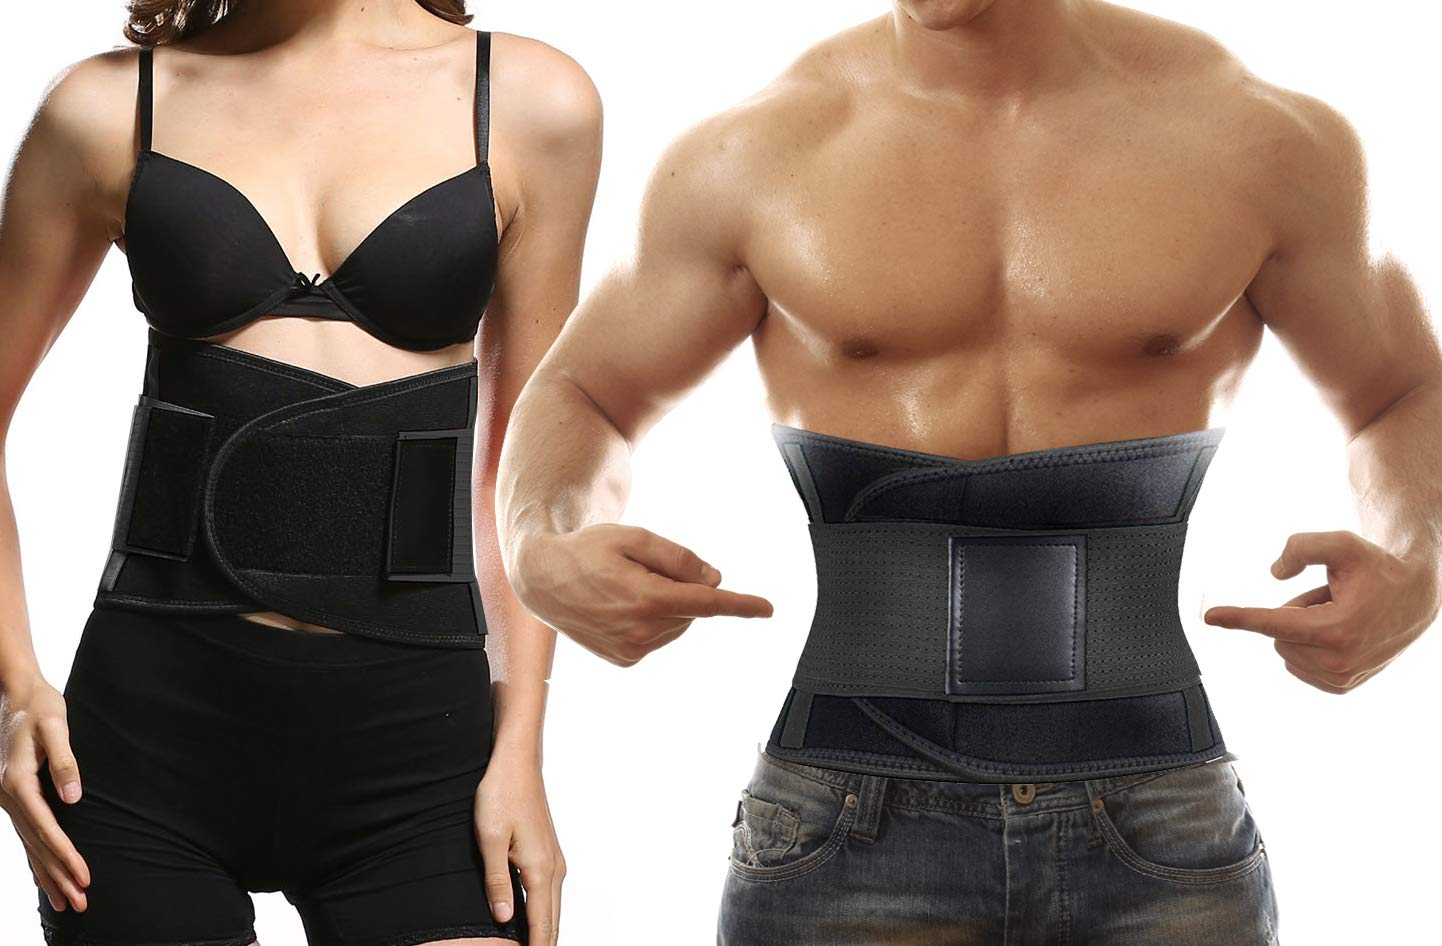 Sweat Belt Waist Trainer for Women & Men -Abdominal Elastic Waist Ab Cincher Trainer Trimmer, Neoprene Hourglass Slimming Body Shaper,Compression Band Workout,Adjustable Back Support (M)